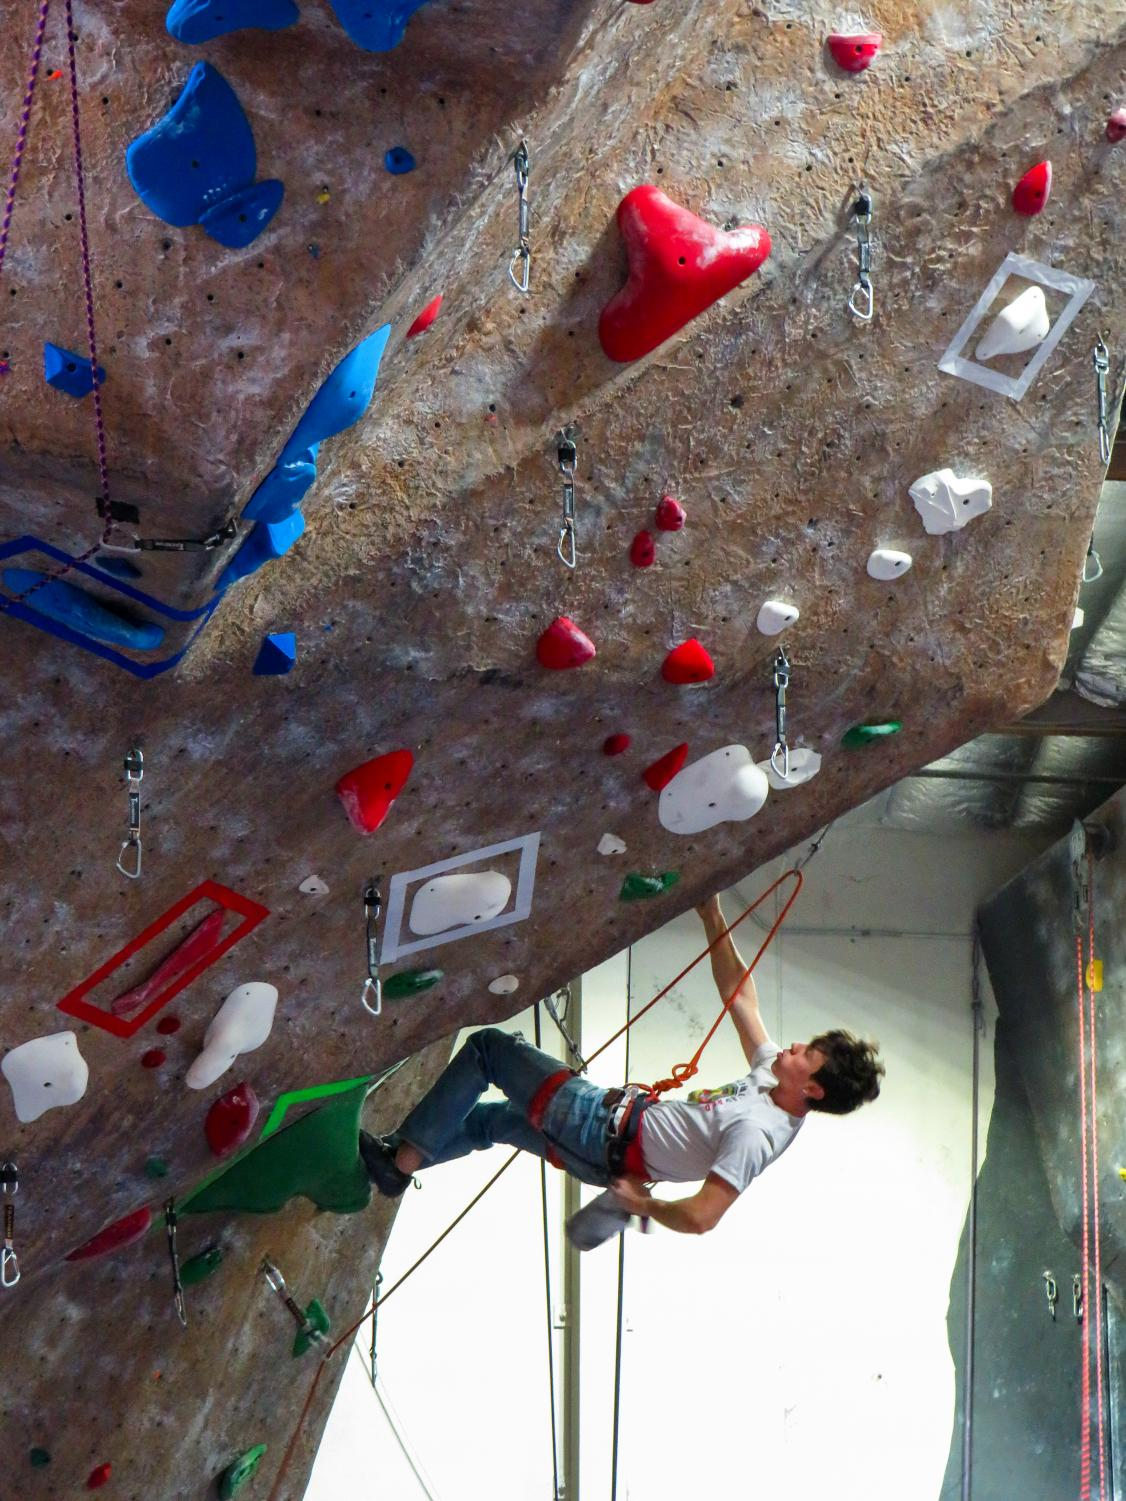 A Touchstone Climbing Series competitor chalks up before his next big move. (Pavlina MarkovaThe Inquirer).